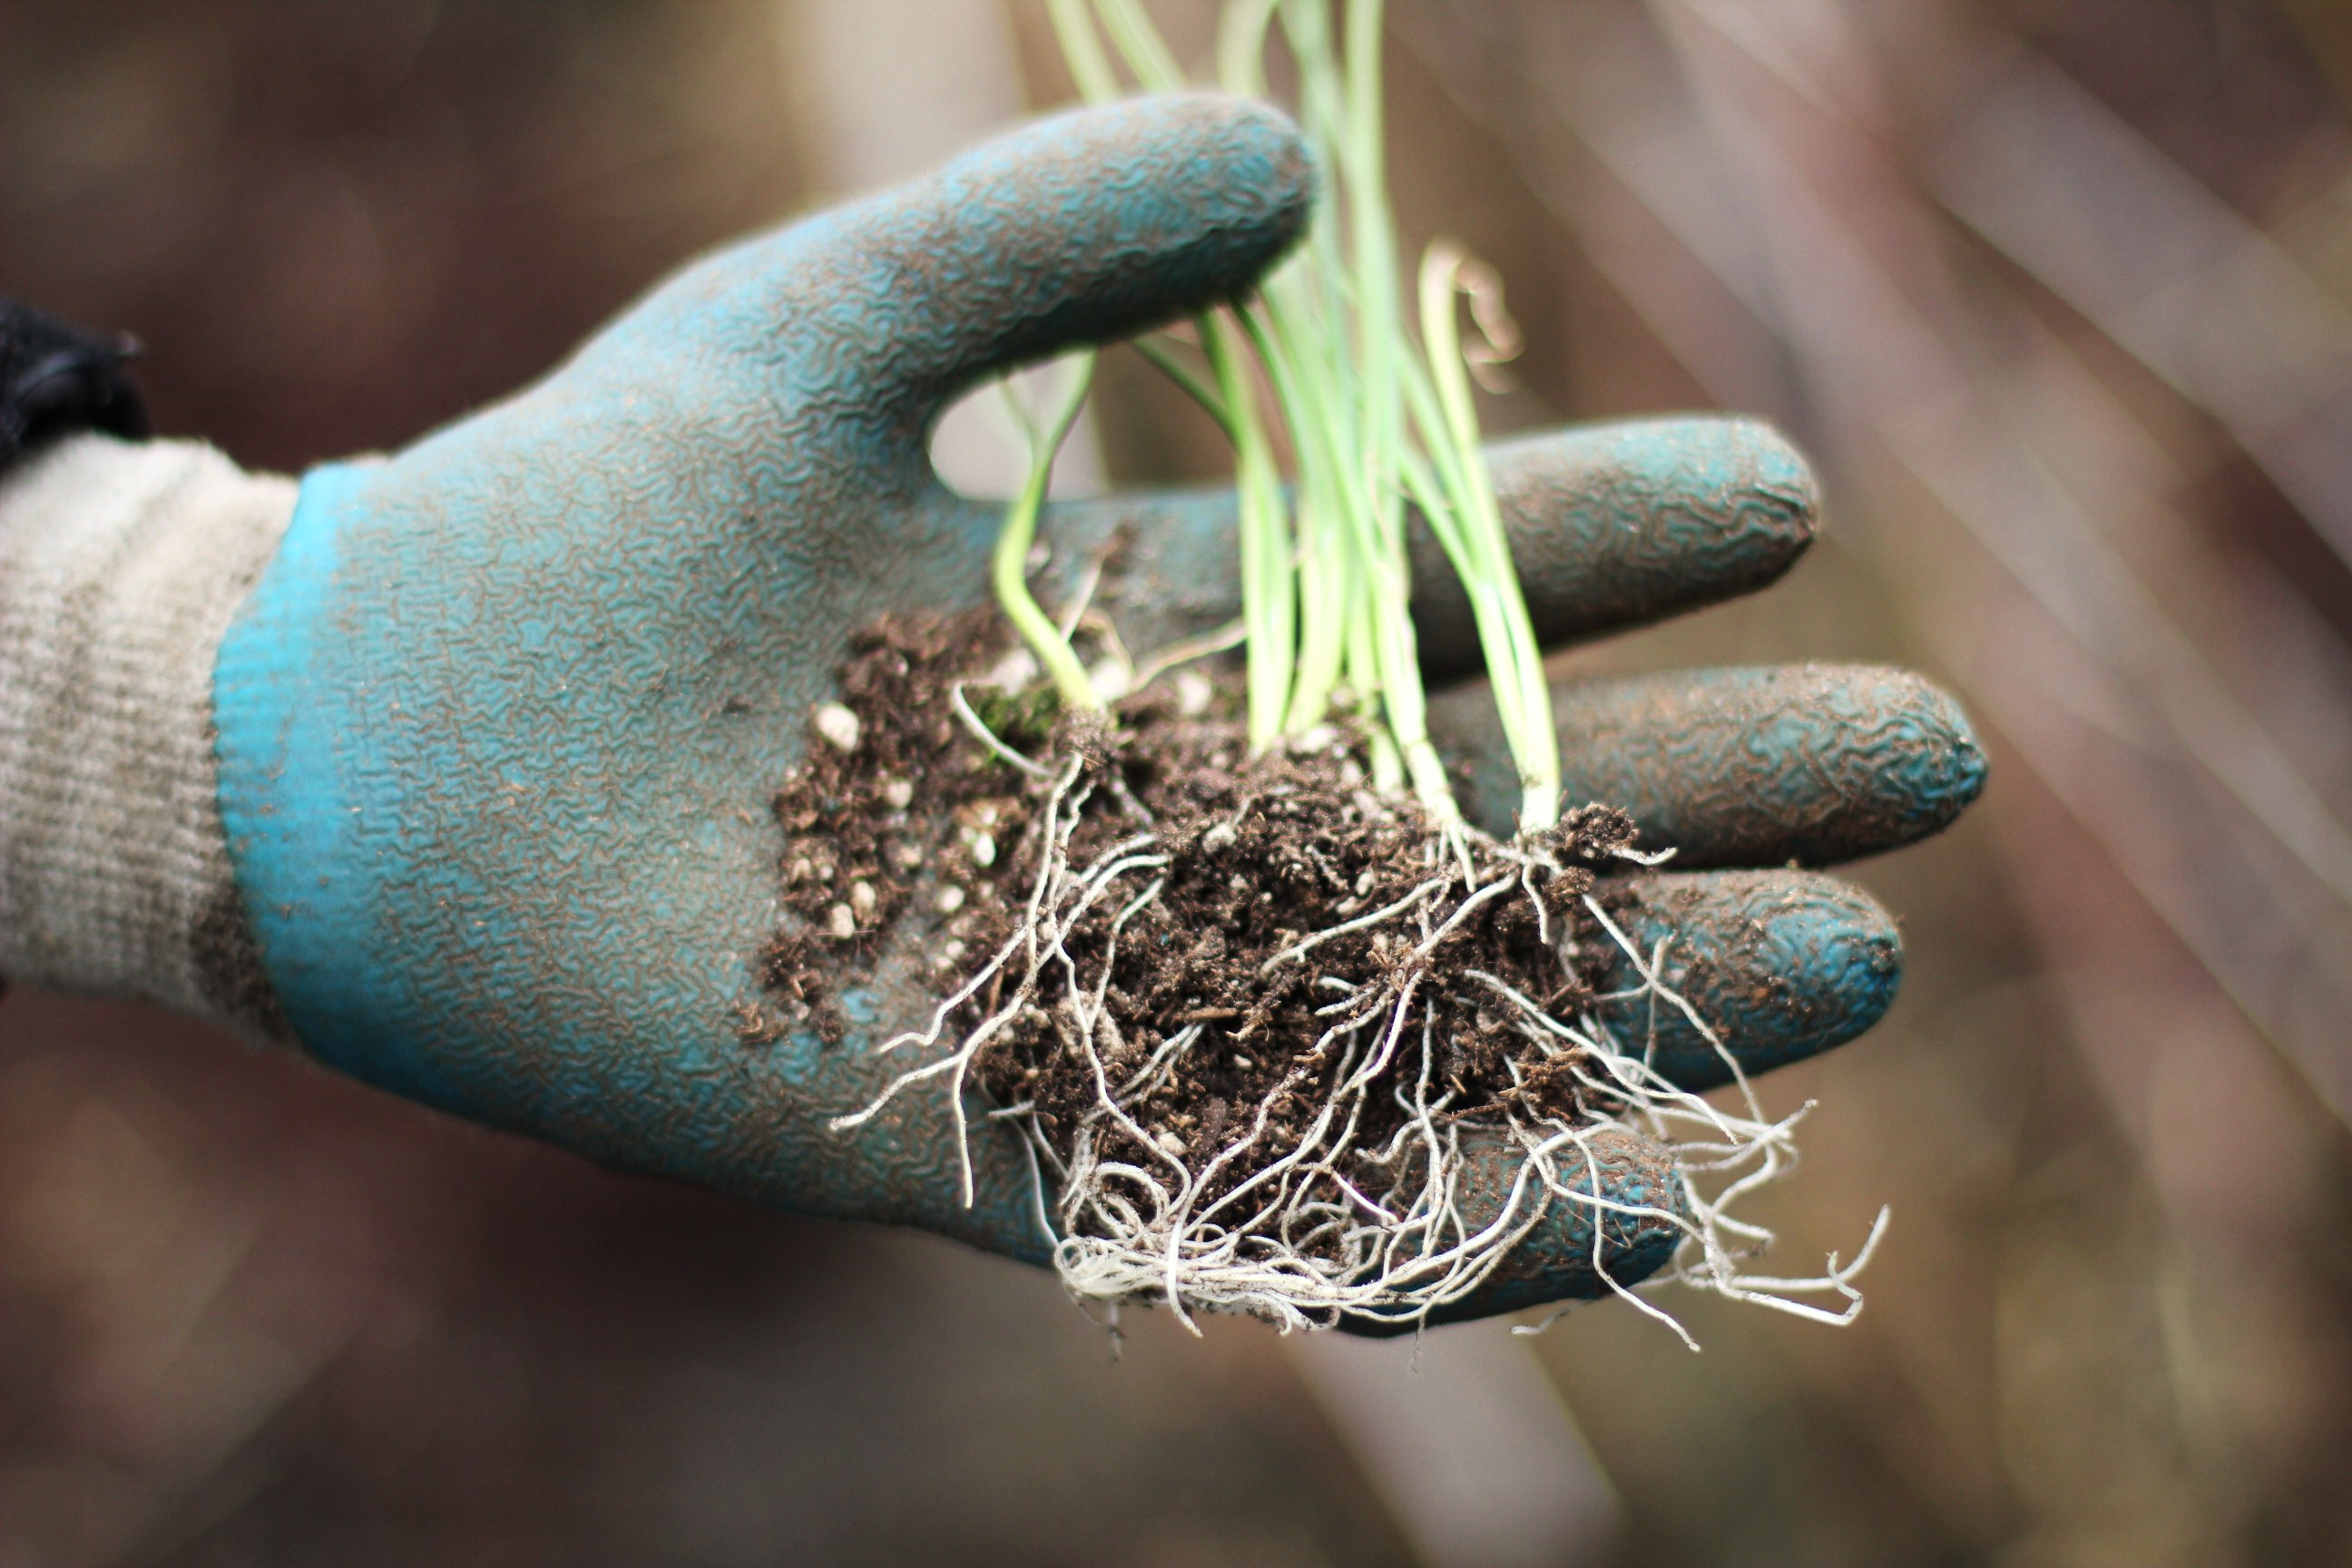 How to Grow Your Own Food: Planting Onion Seedlings